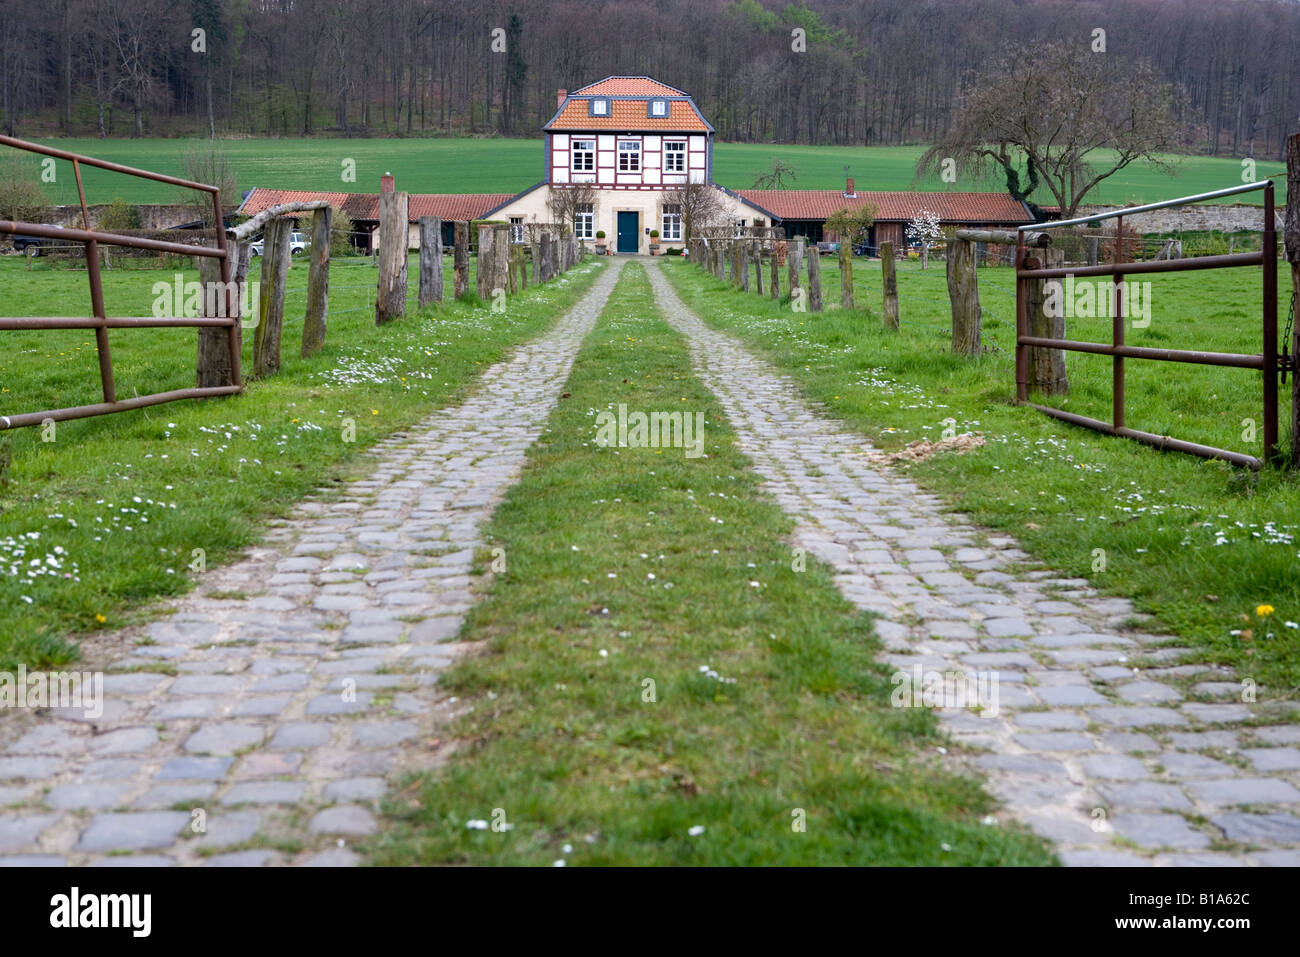 Life in the country the dream of the house of one s own Leben auf dem Lande der Traum vom eigenen Haus Laves culture - Stock Image